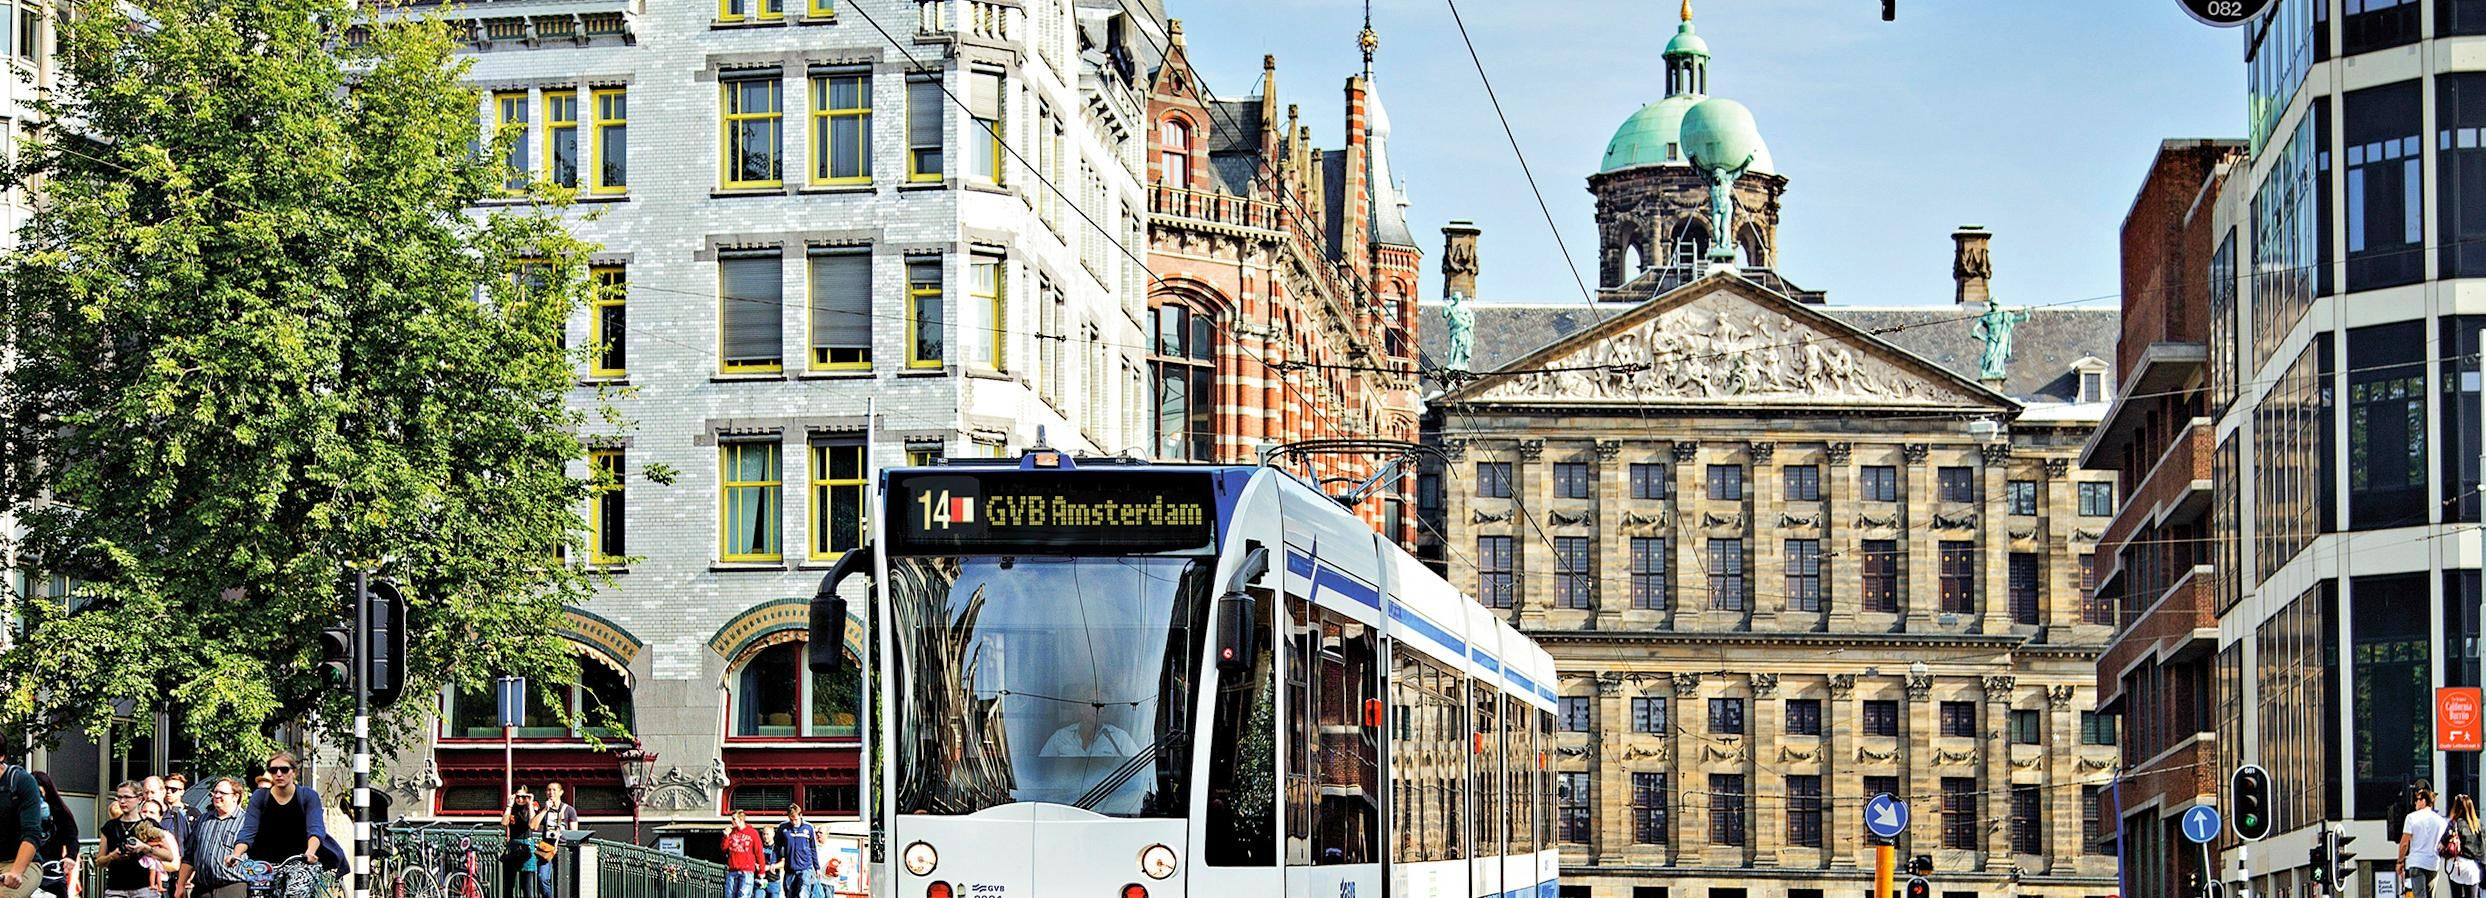 Amsterdam Gvb Public Transport Ticket Getyourguide